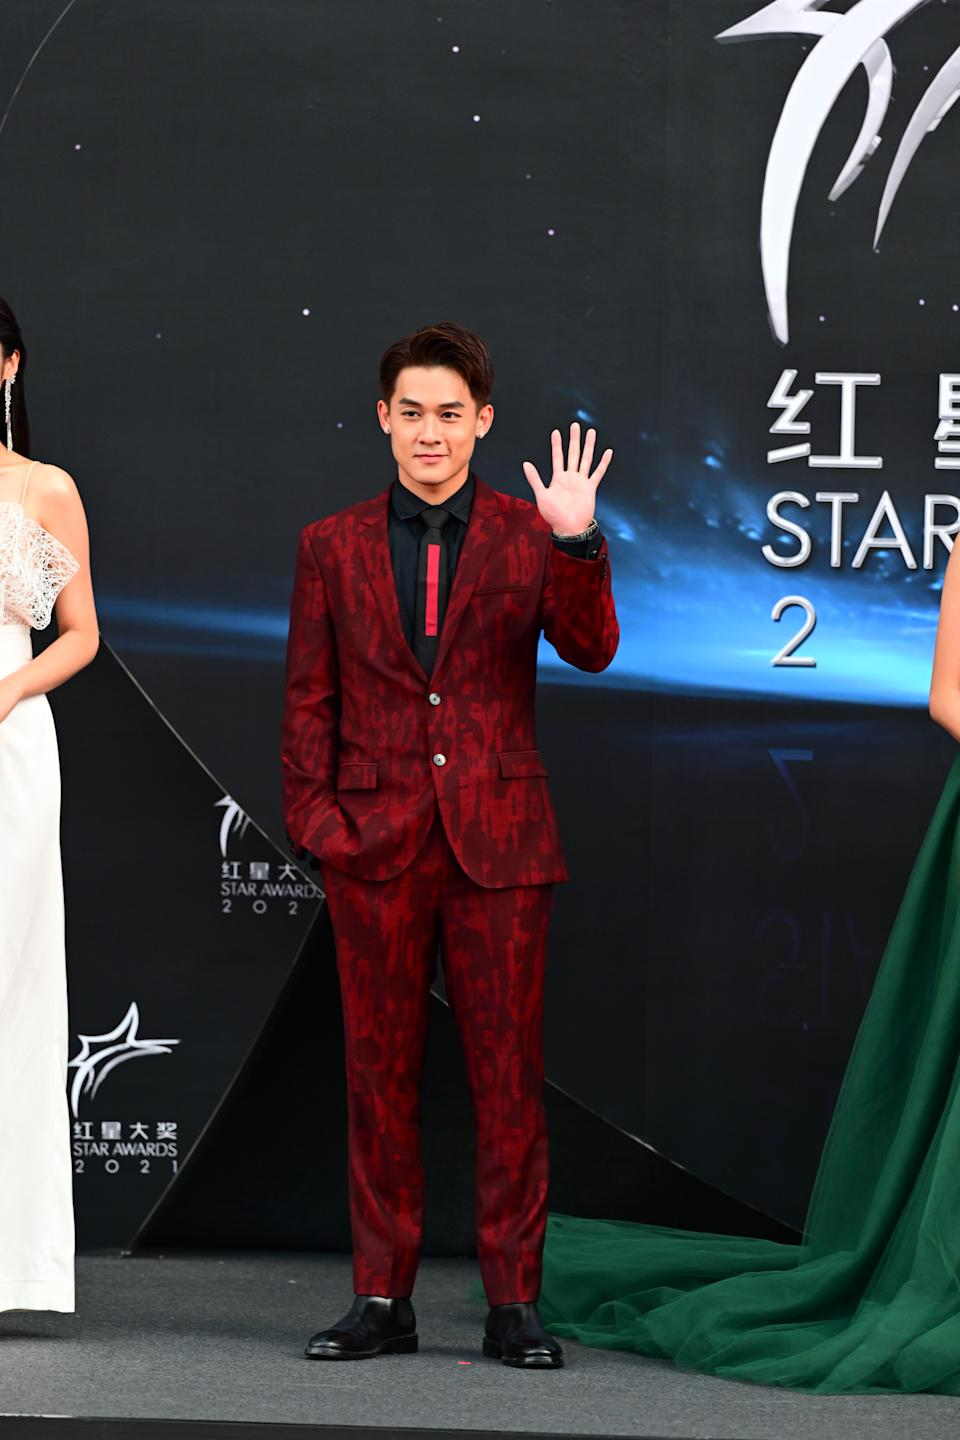 Richie Koh at Star Awards held at Changi Airport on 18 April 2021. (Photo: Mediacorp)